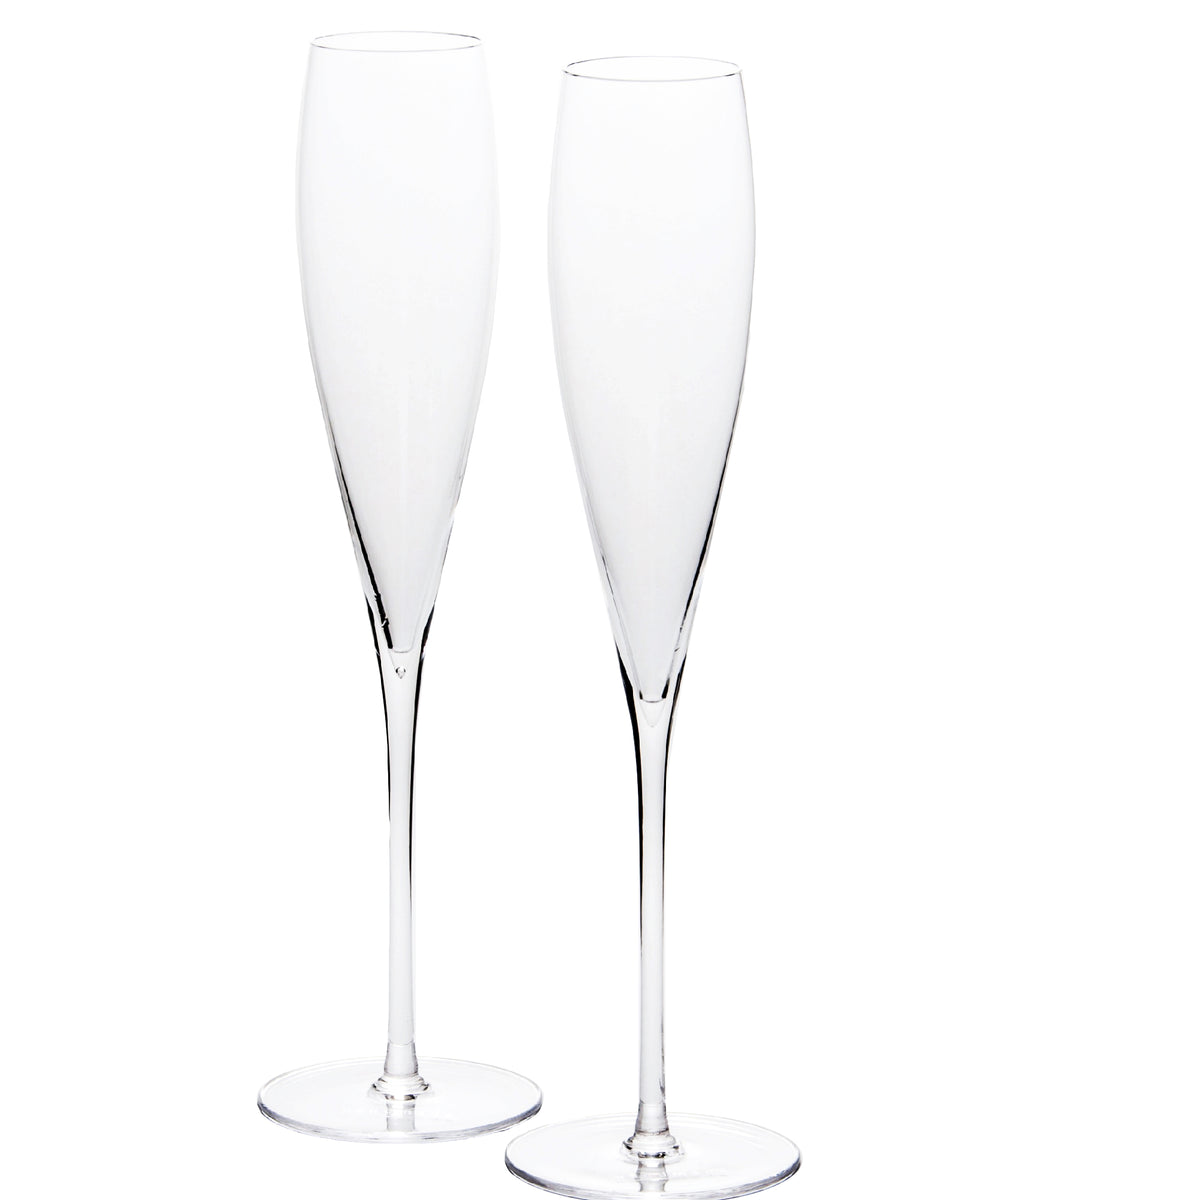 Set of 2 Savoy Champagne Flutes